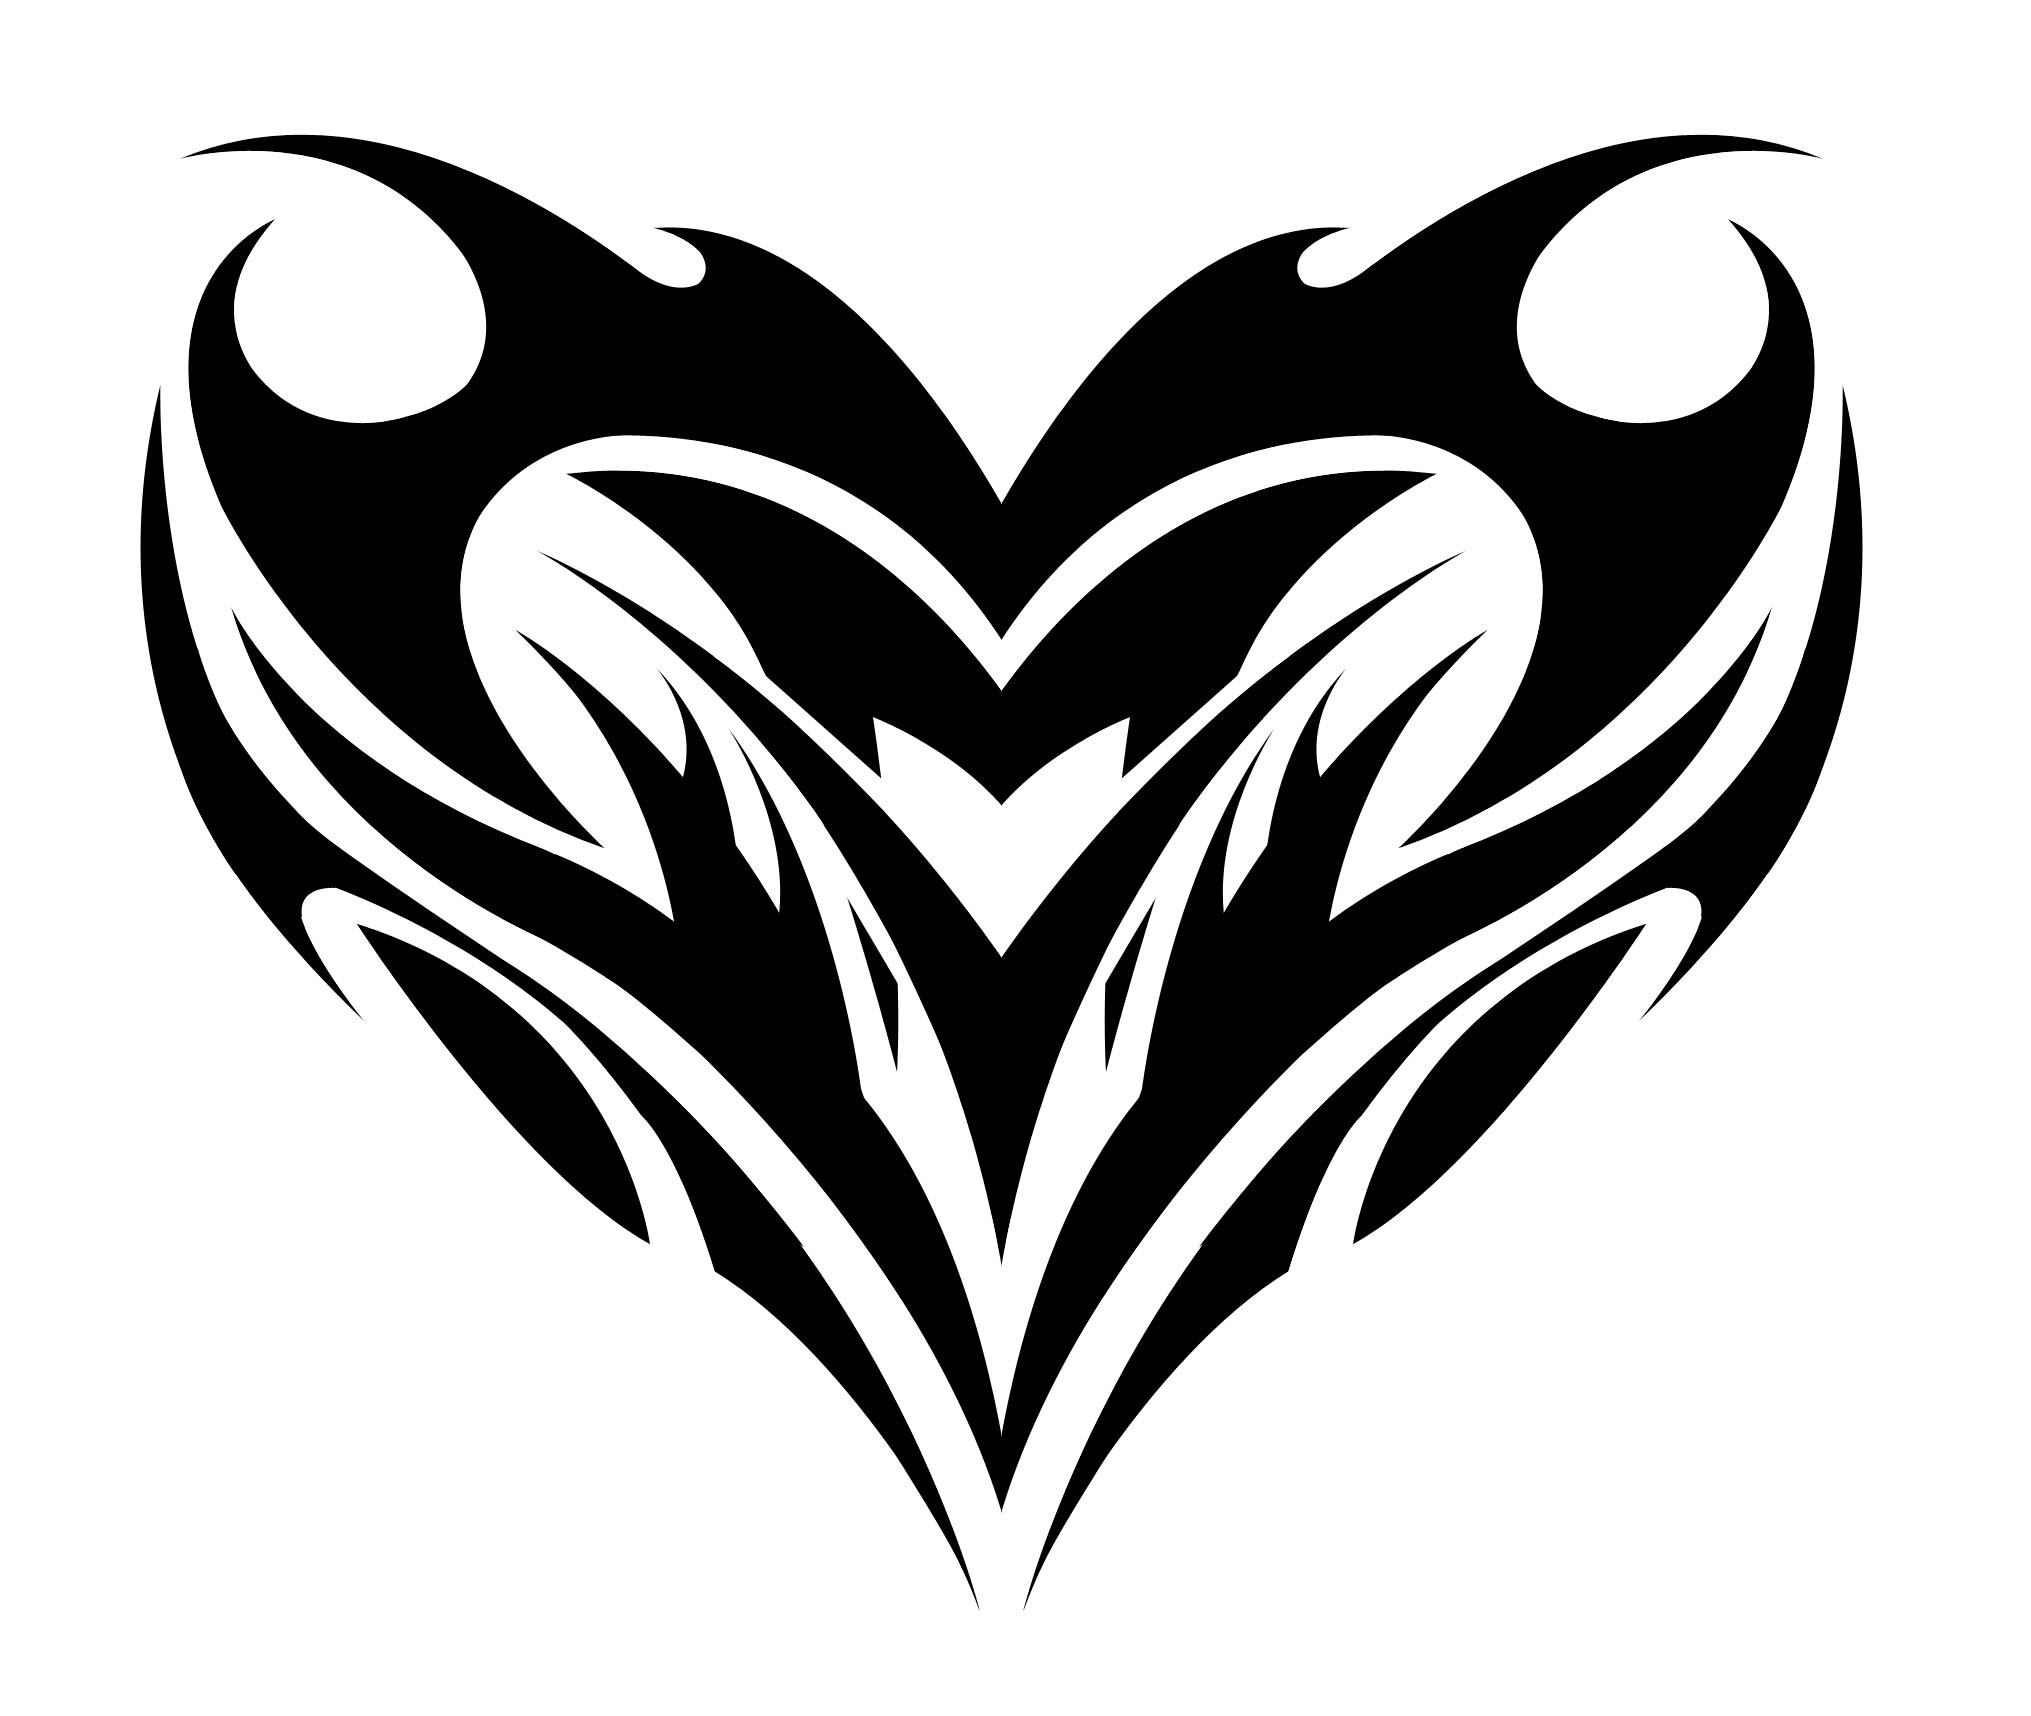 2031x1716 Cool Heart Designs To Draw